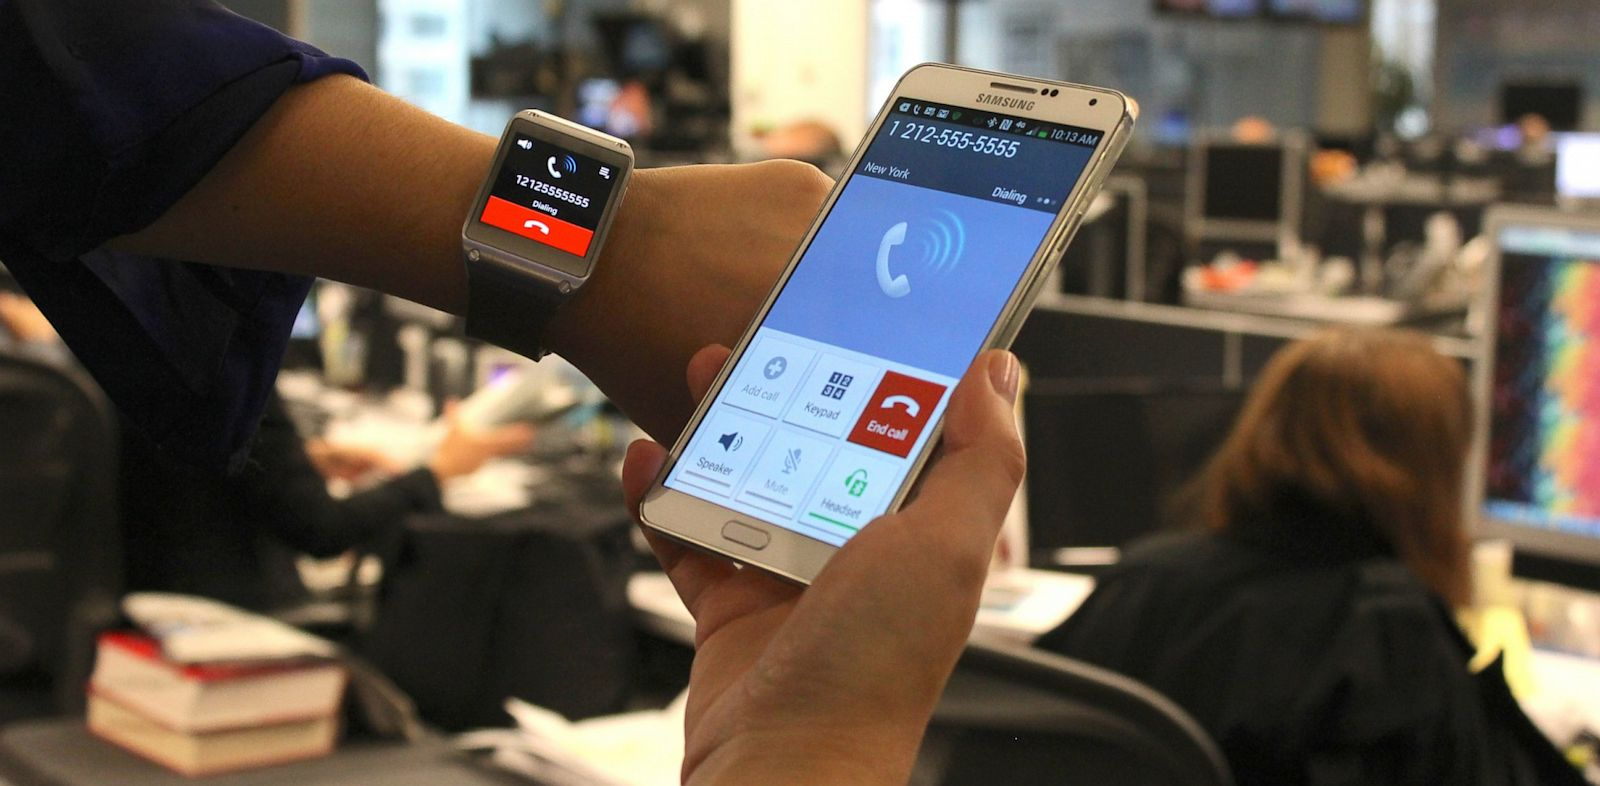 PHOTO: Galaxy Gear smartwatch.